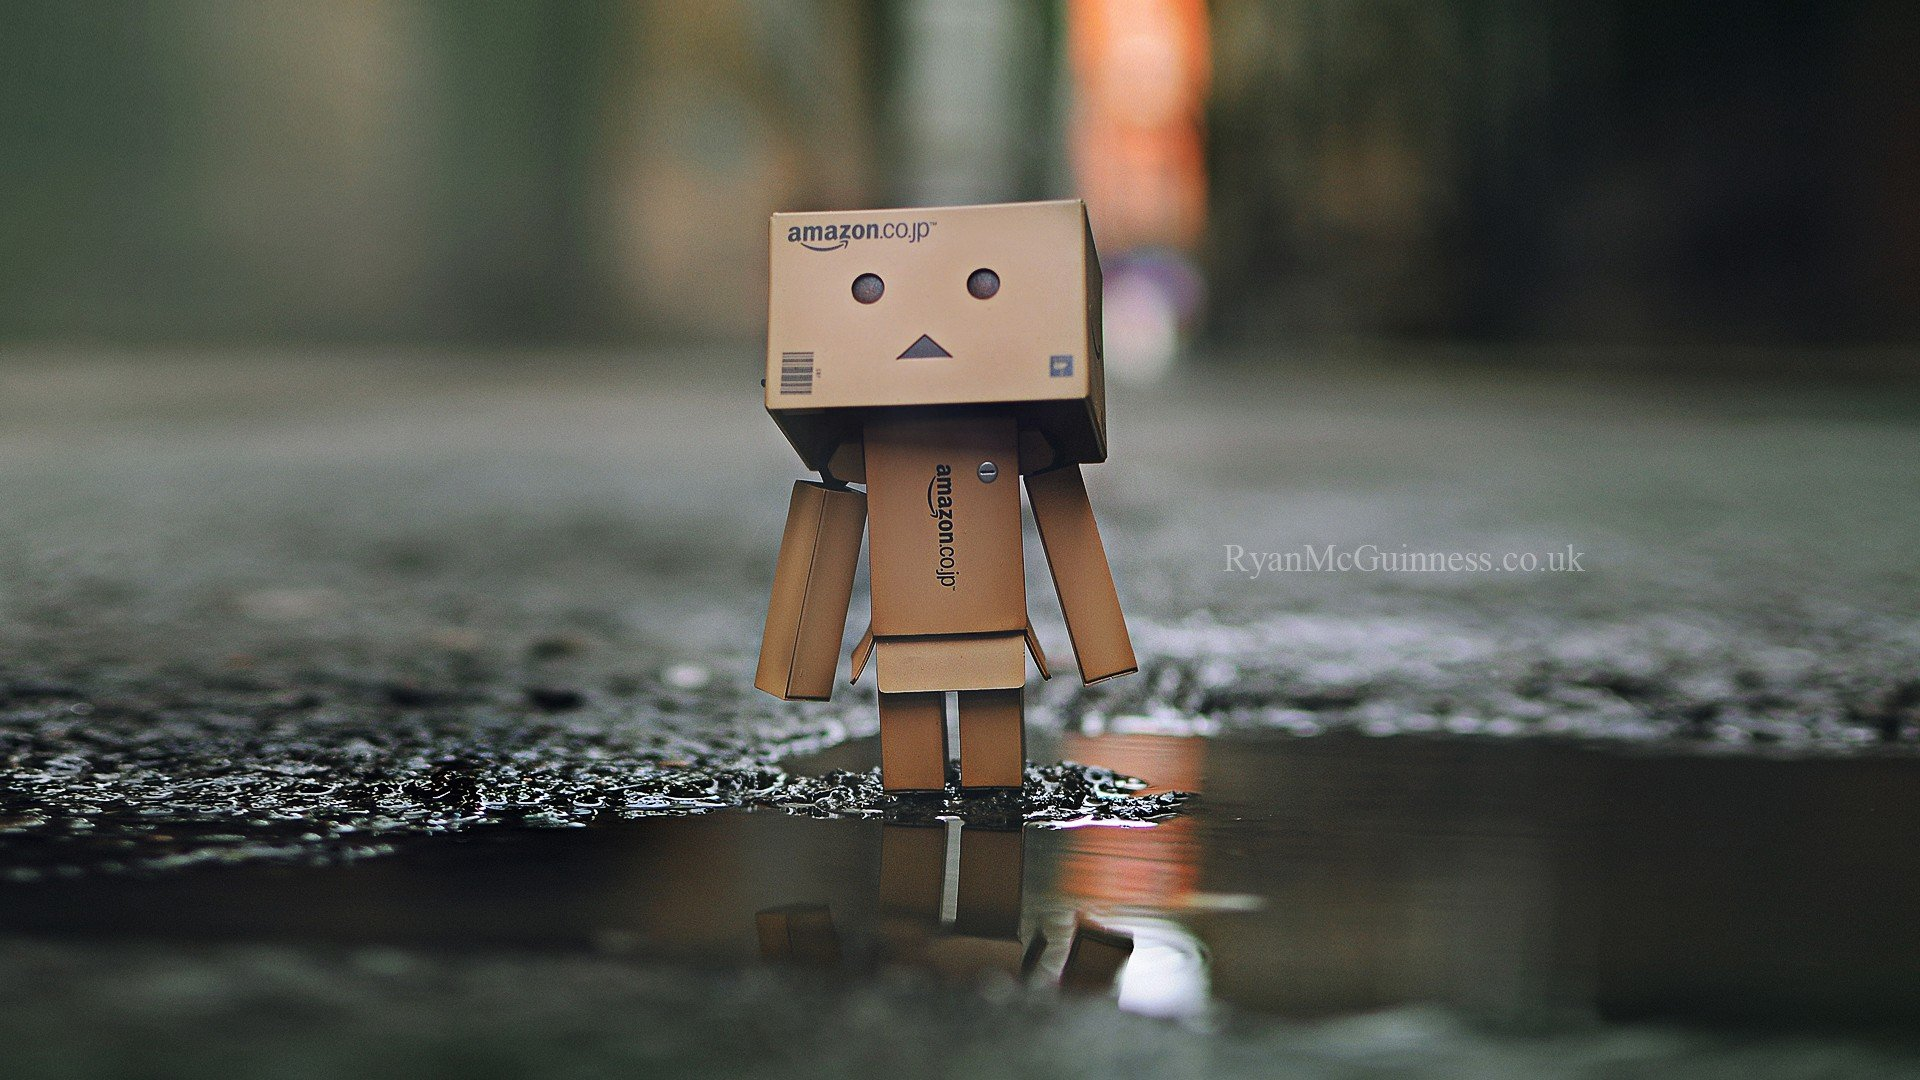 danboard wallpapers 28 hd - photo #1